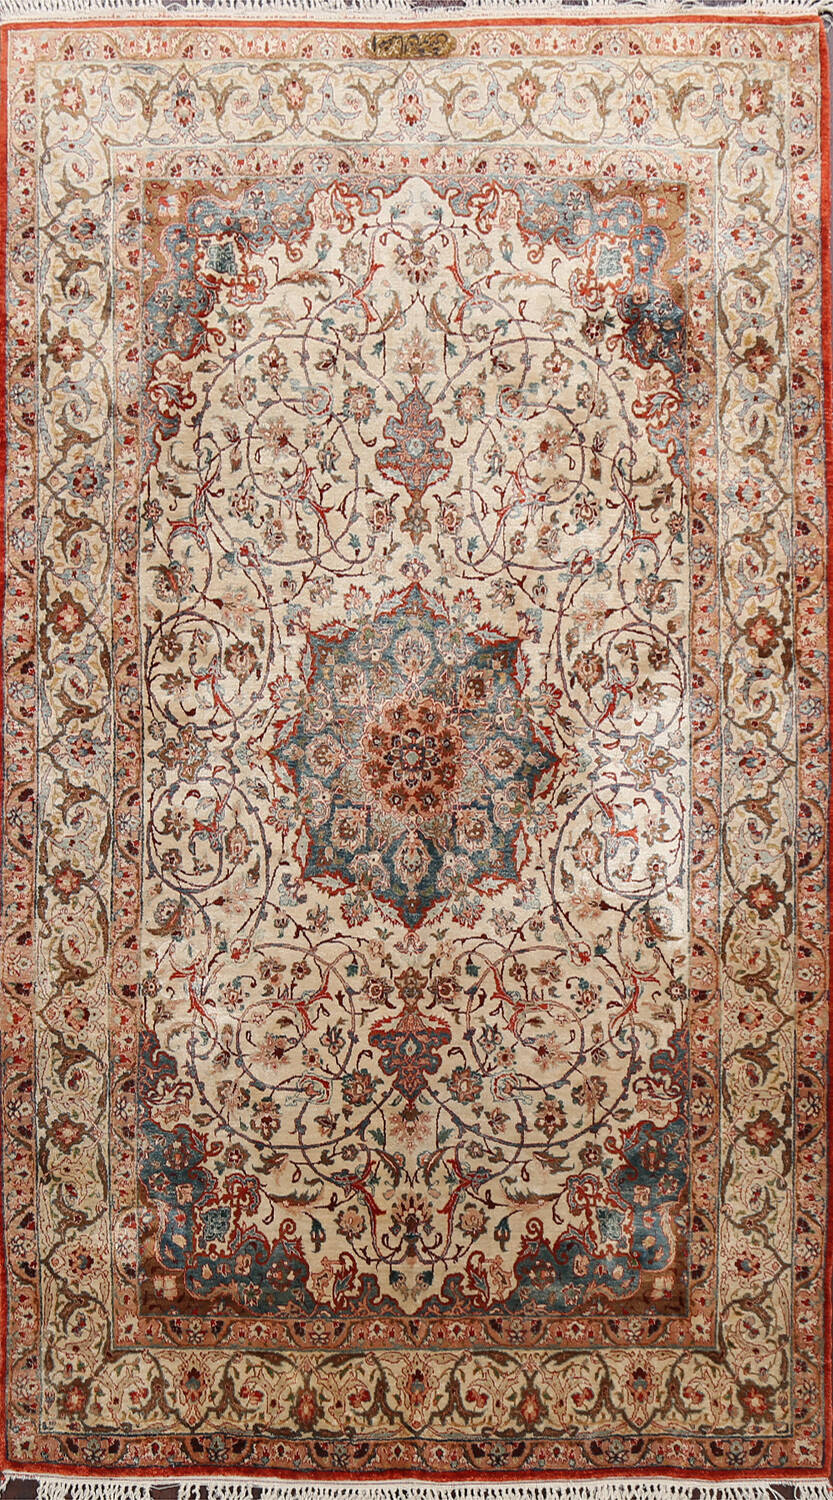 Antique 100% Vegetable Dye Isfahan Persian Area Rug 4x6 image 1